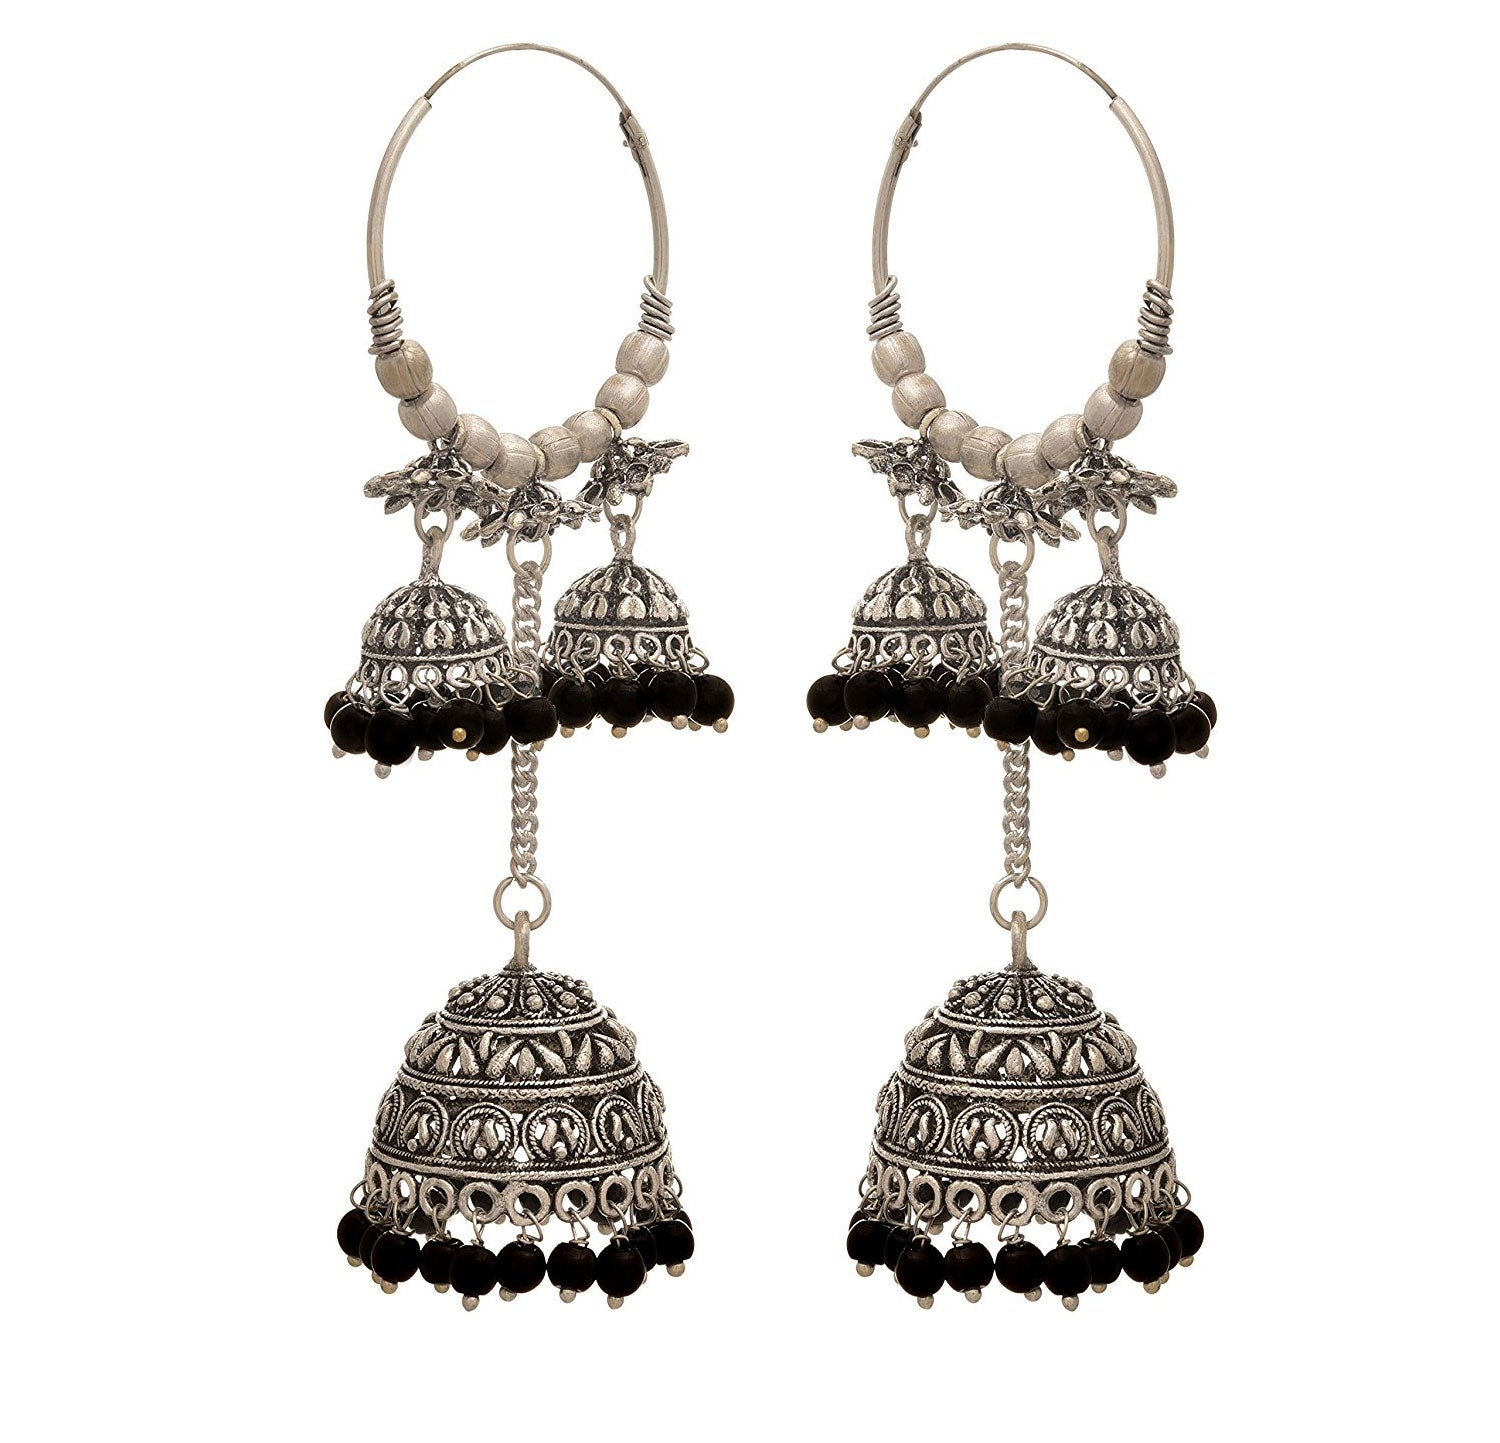 JFL - Traditional Ethnic Handmade German Silver Plated Oxidised Bead Designer Chandelier Jhumka Earring For Women & Girls.